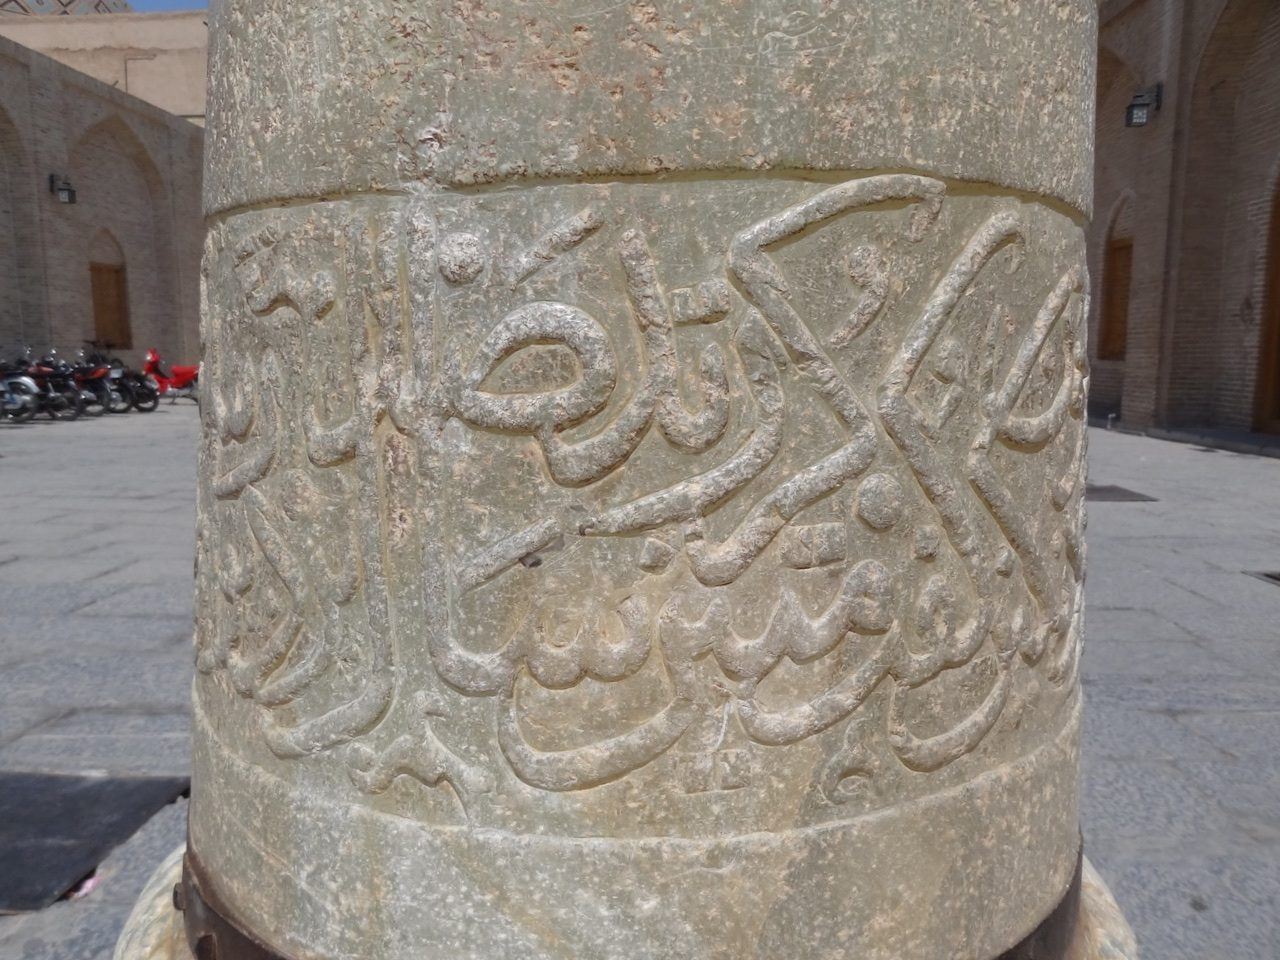 Inscription on a column